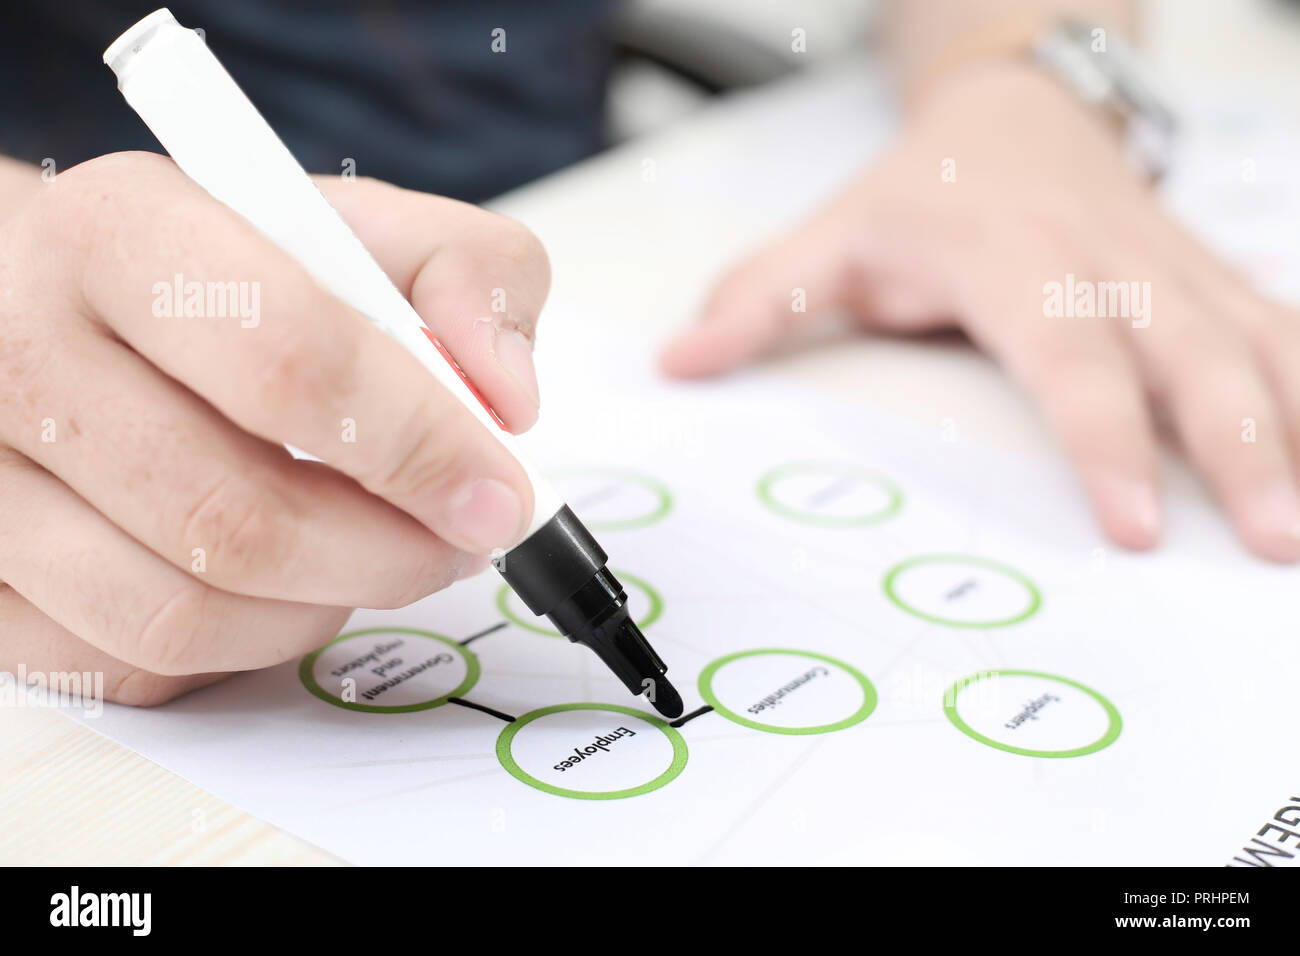 Employment Info chart cross checking with marker. - Stock Image